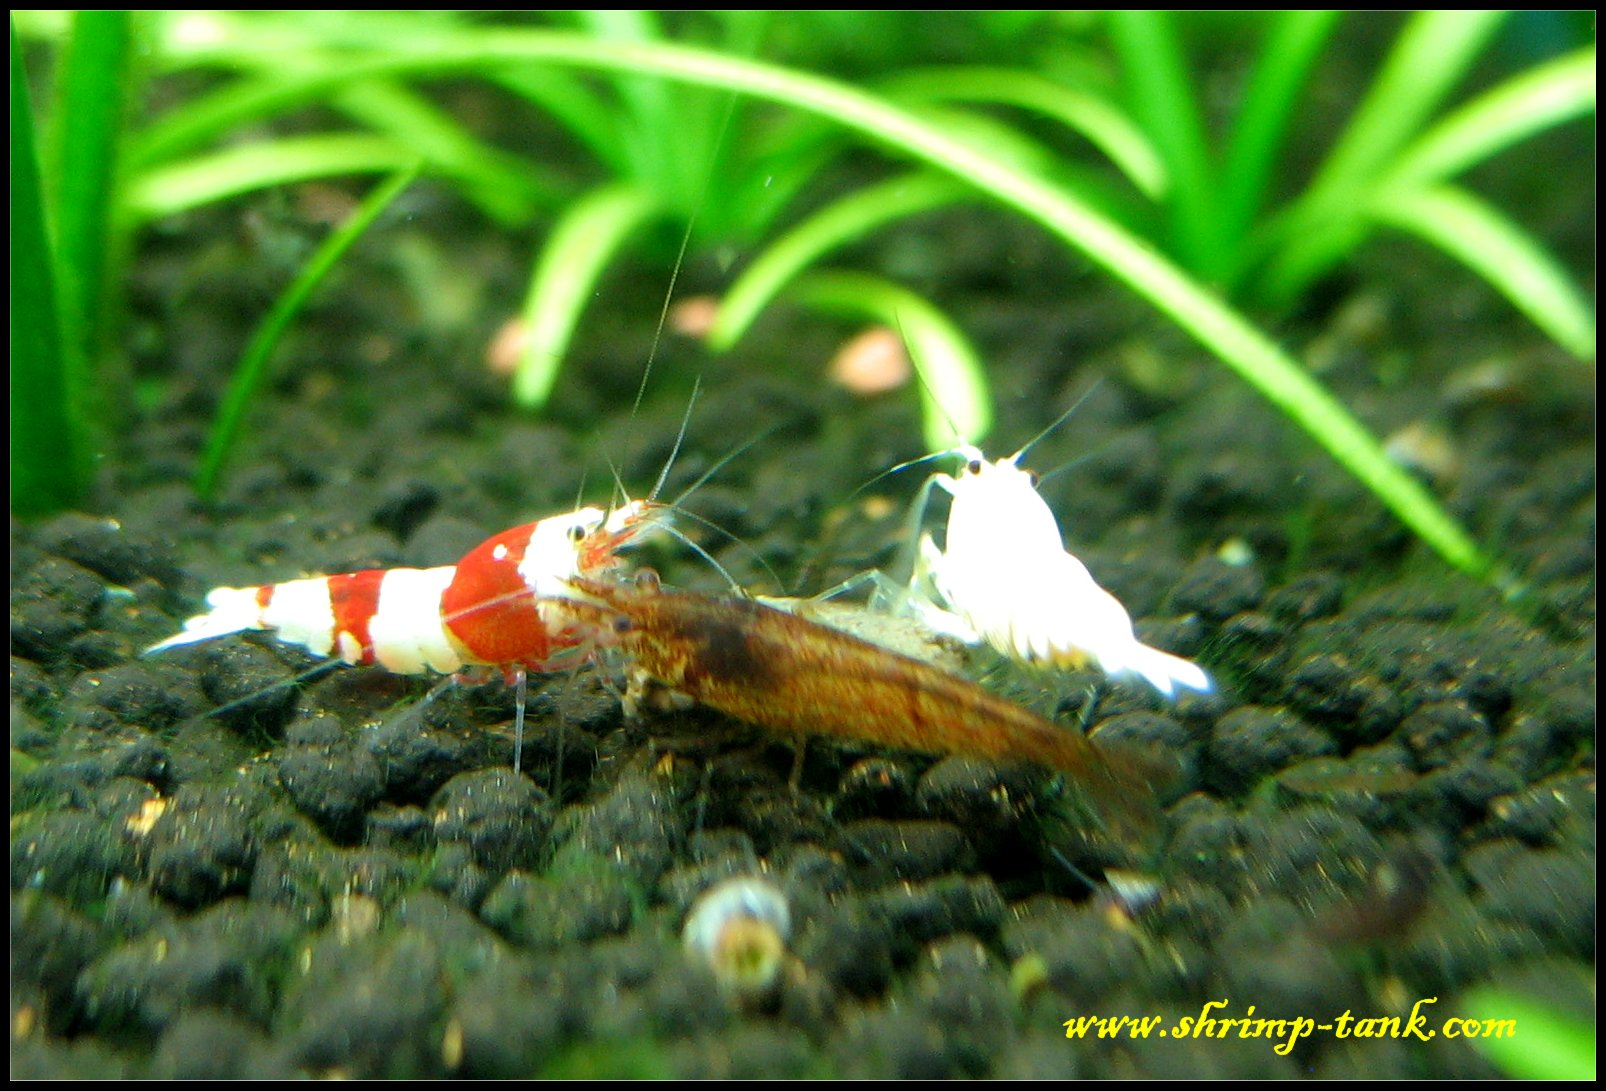 Caridina and neocaridina shrimps @ Shrimp Tank Shrimps In Aquarium